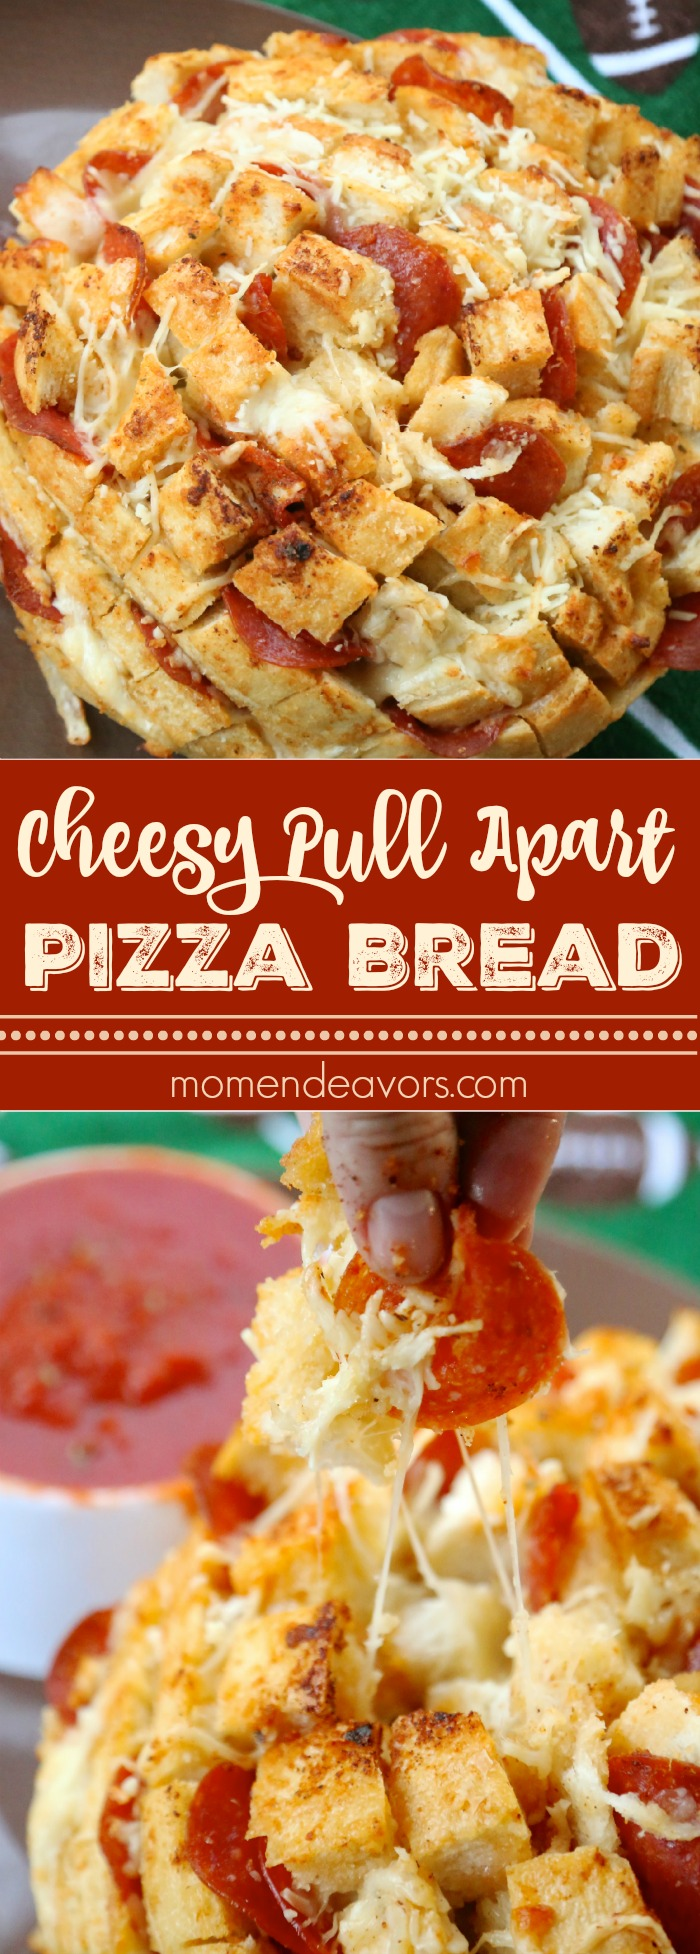 Cheesy Pizza Pull Apart Garlic Bread